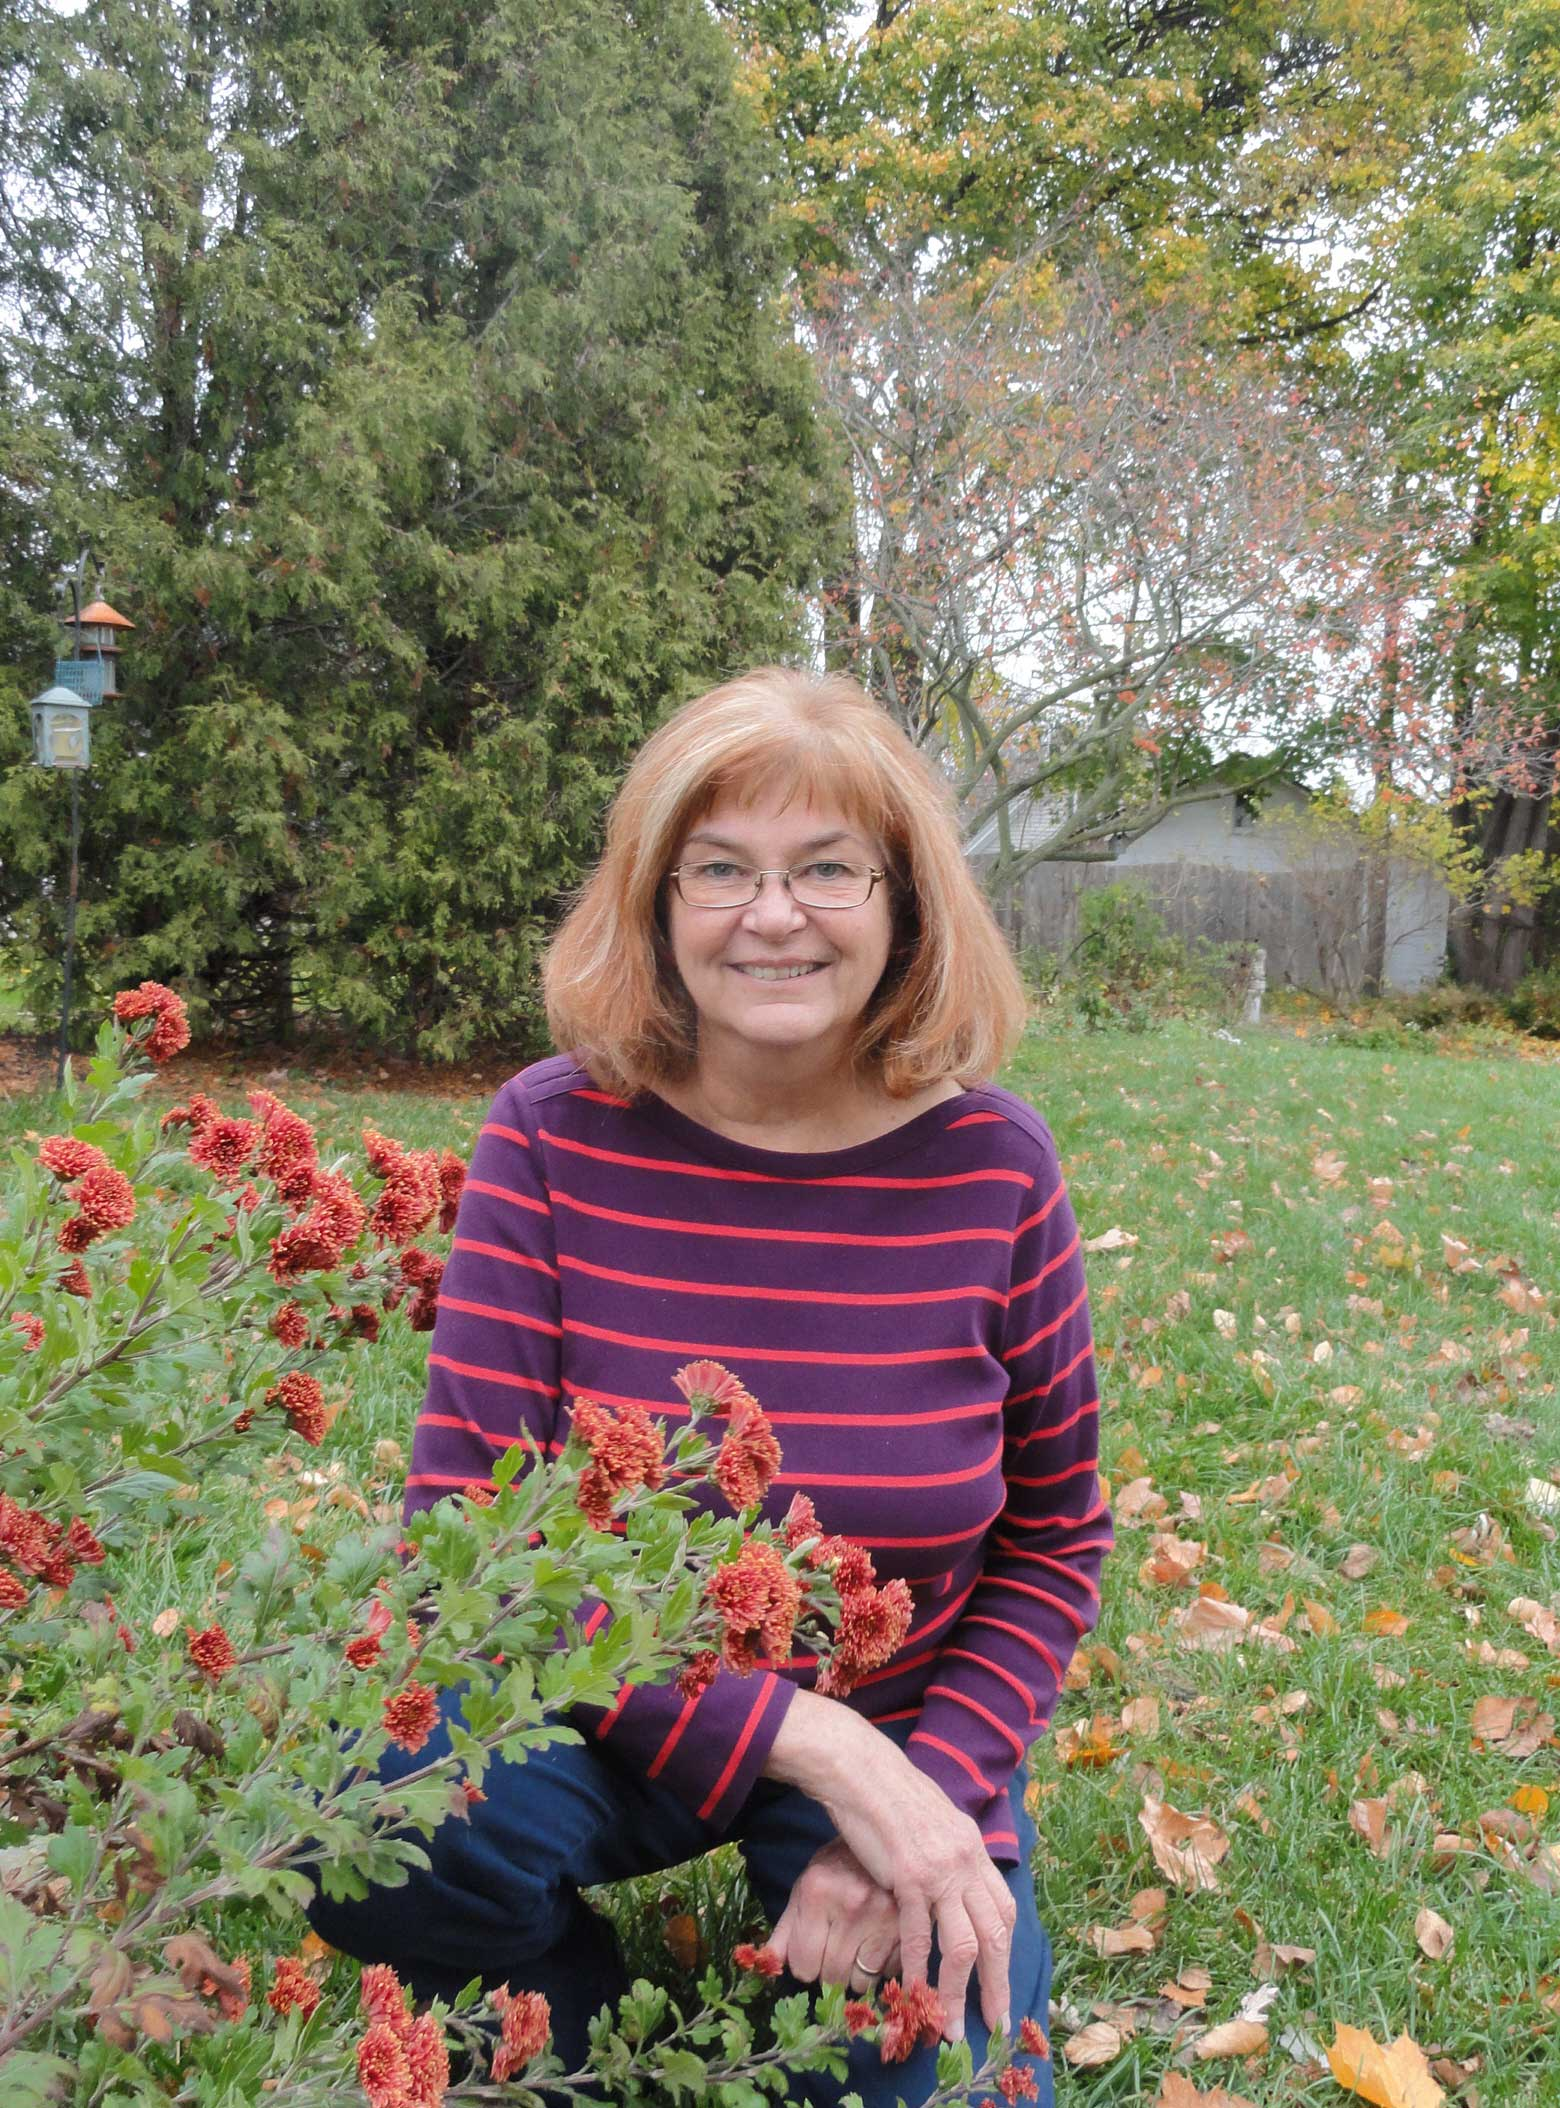 Marilyn Zelke-Windau    Marilyn Zelke-Windau is a former elementary school art teacher and a Wisconsin poet who enjoys painting with words. Her work has appeared in printed and online venues including  Verse Wisconsin, Stoneboat, qarrtsiluni, Your Daily Poem,  and several anthologies .  A member of the Wisconsin Fellowship of Poets, her first chapbook  Adventures in Paradise  was published in 2014 by Finishing Line Press.  Momentary Ordinary , a full length, illustrated manuscript, was published  in December, 2014 by Pebblebrook Press.